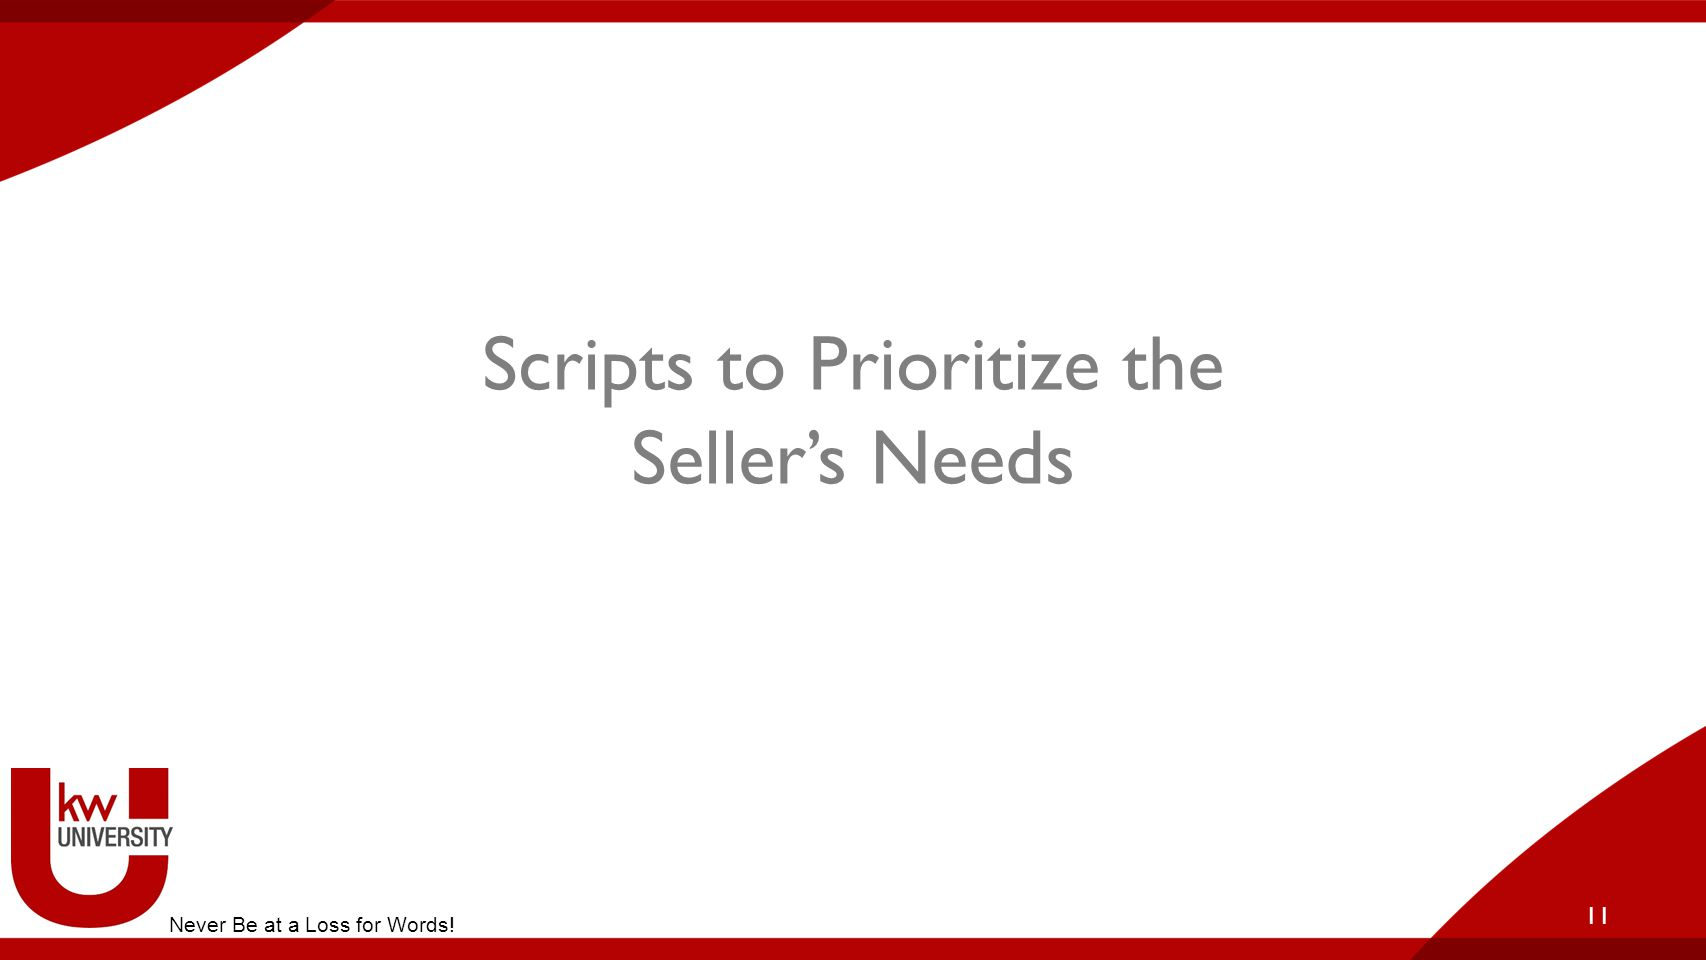 Scripts to Prioritize the Seller's Needs